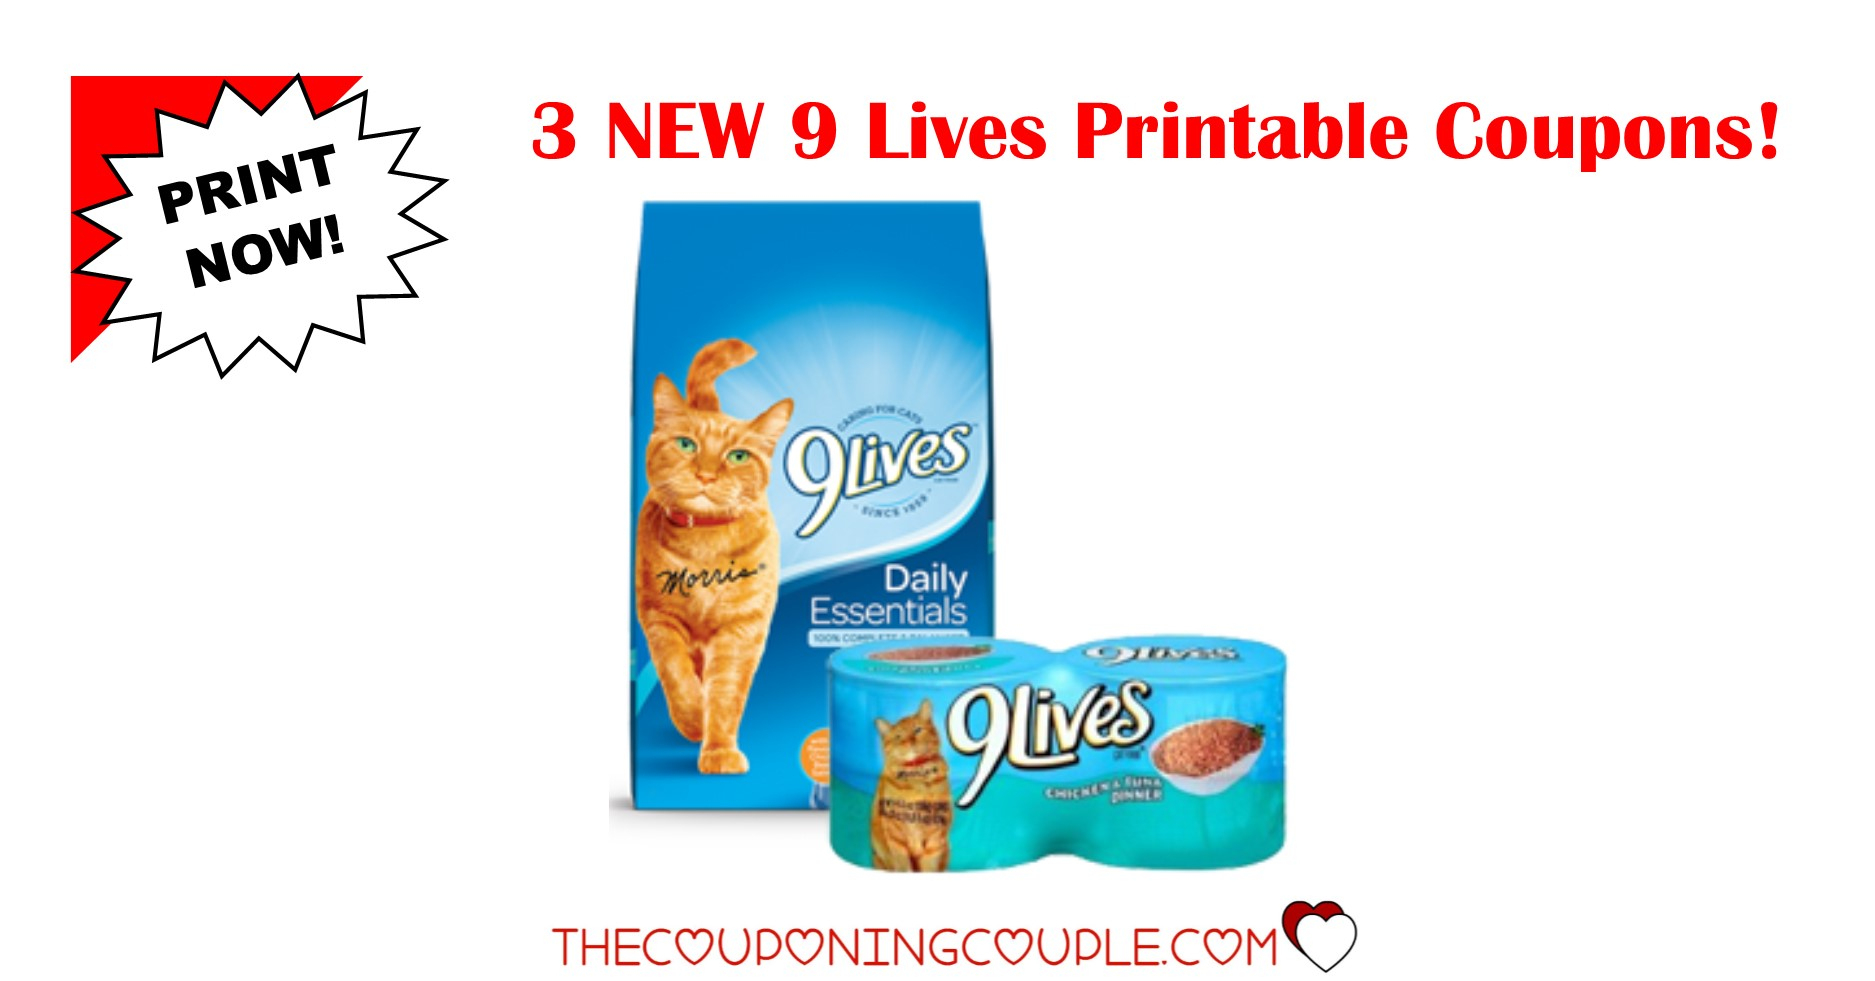 3 New 9 Lives Printable Coupons ~ Print Now! - Free Printable 9 Lives Cat Food Coupons